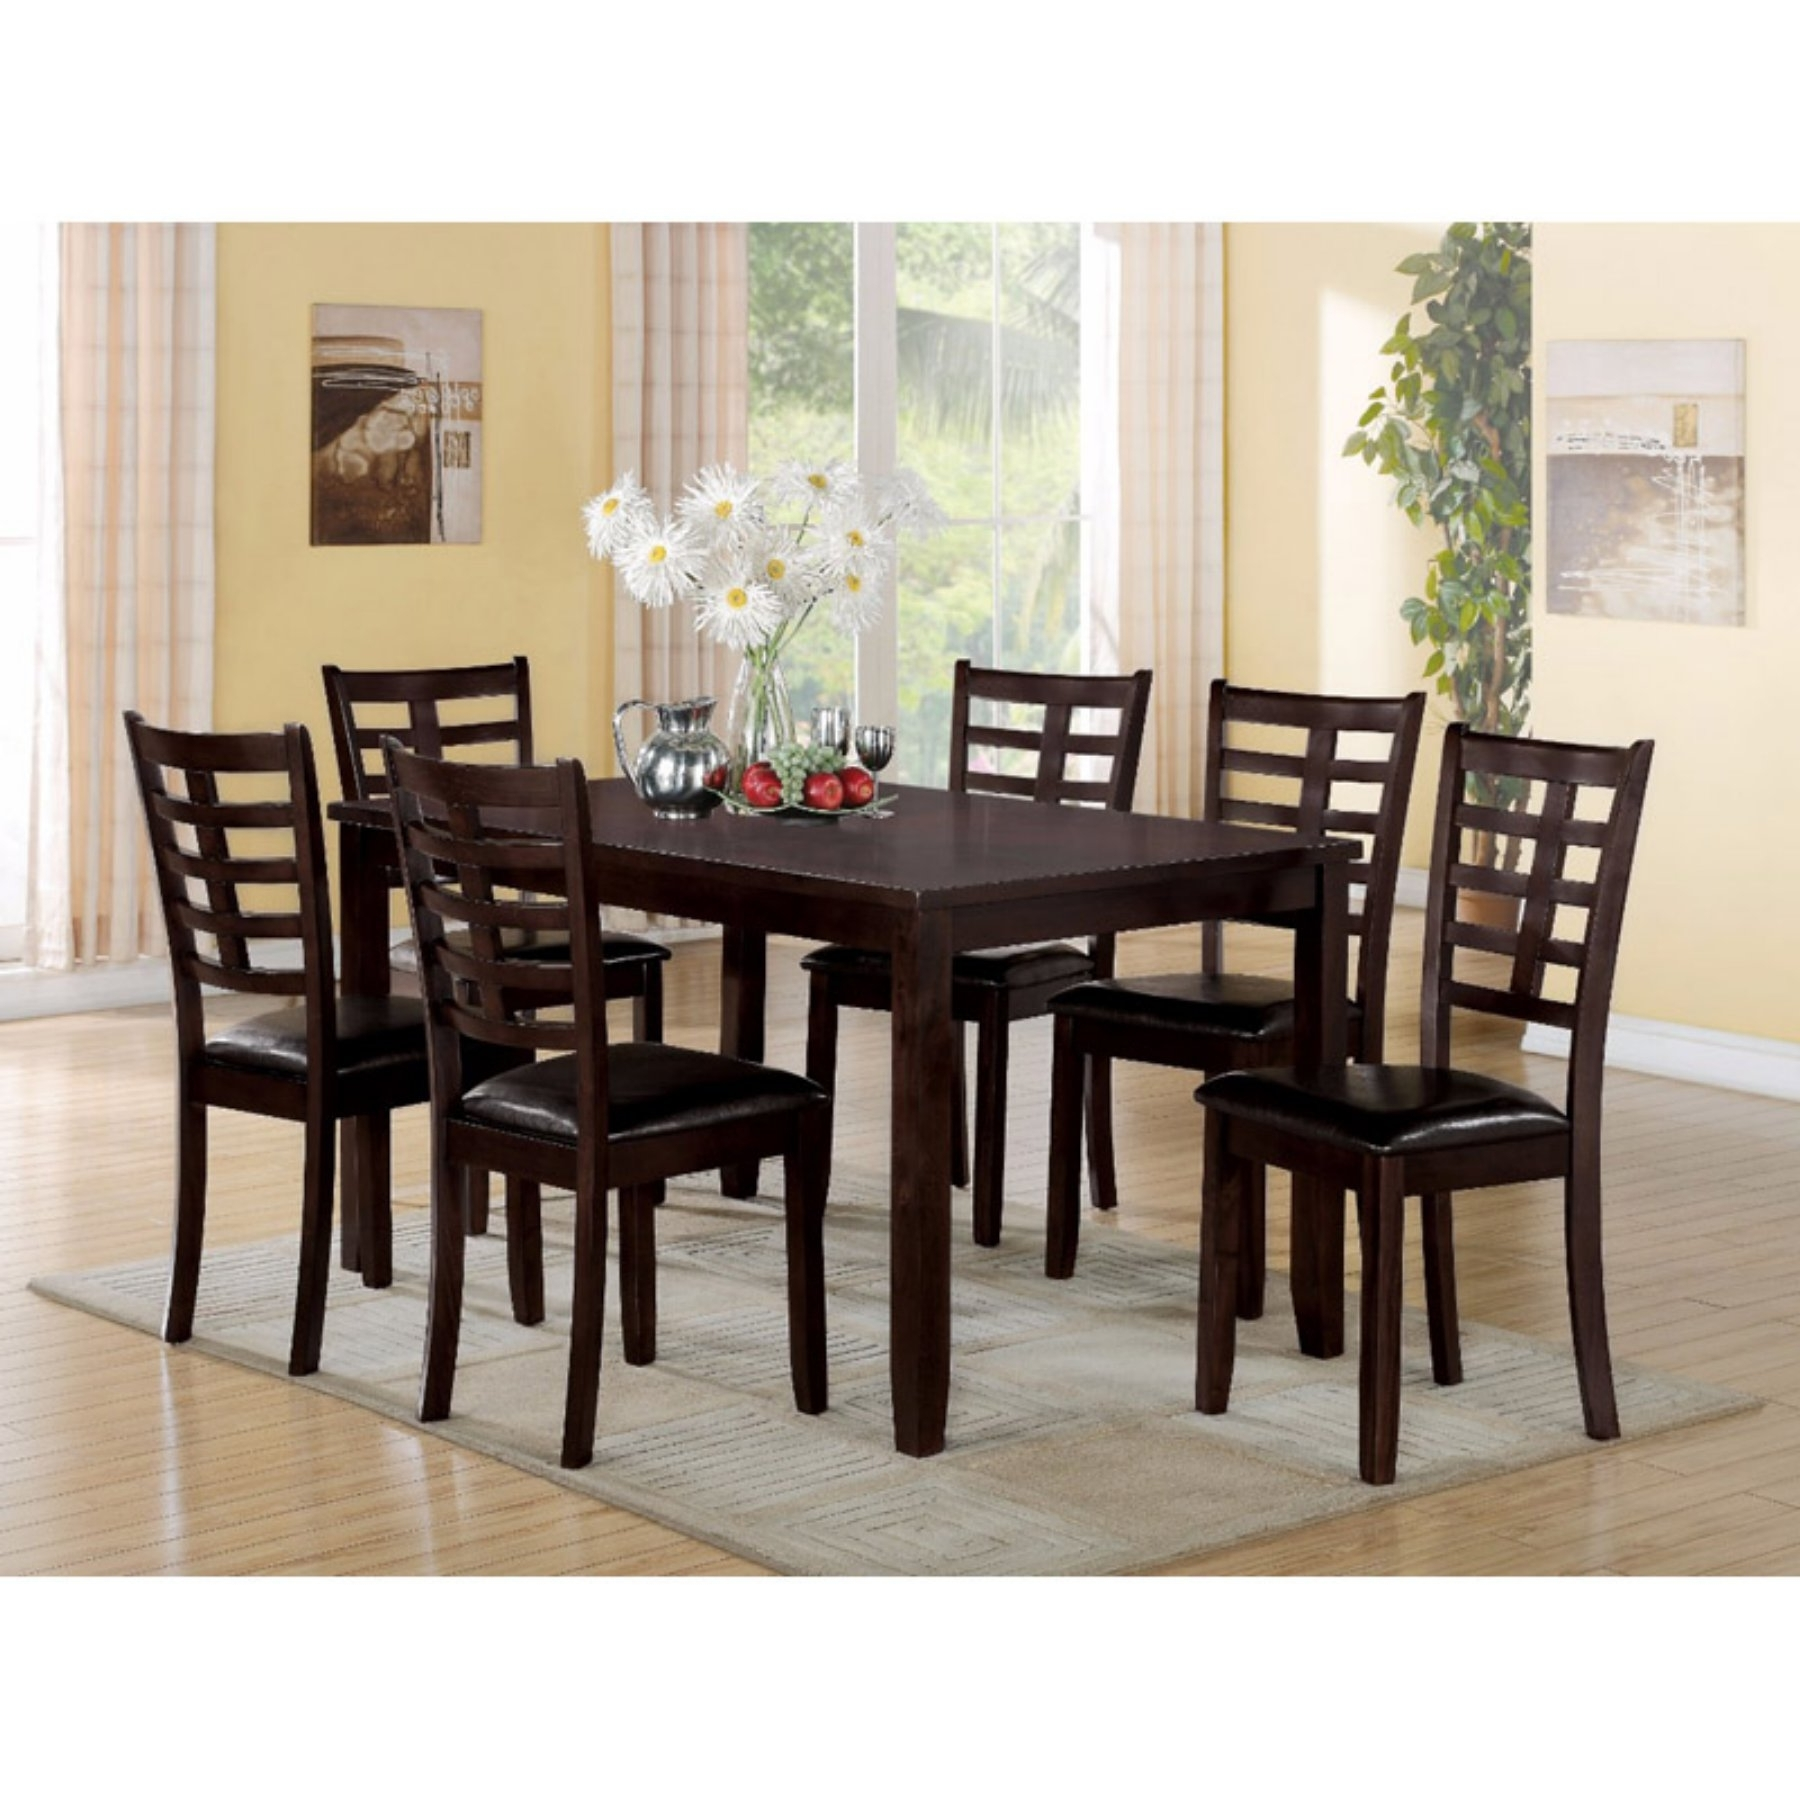 Benzara Wooden 7 Piece Rectangular Dining Table Set In 2018 Inside Fashionable Crawford 7 Piece Rectangle Dining Sets (View 2 of 25)